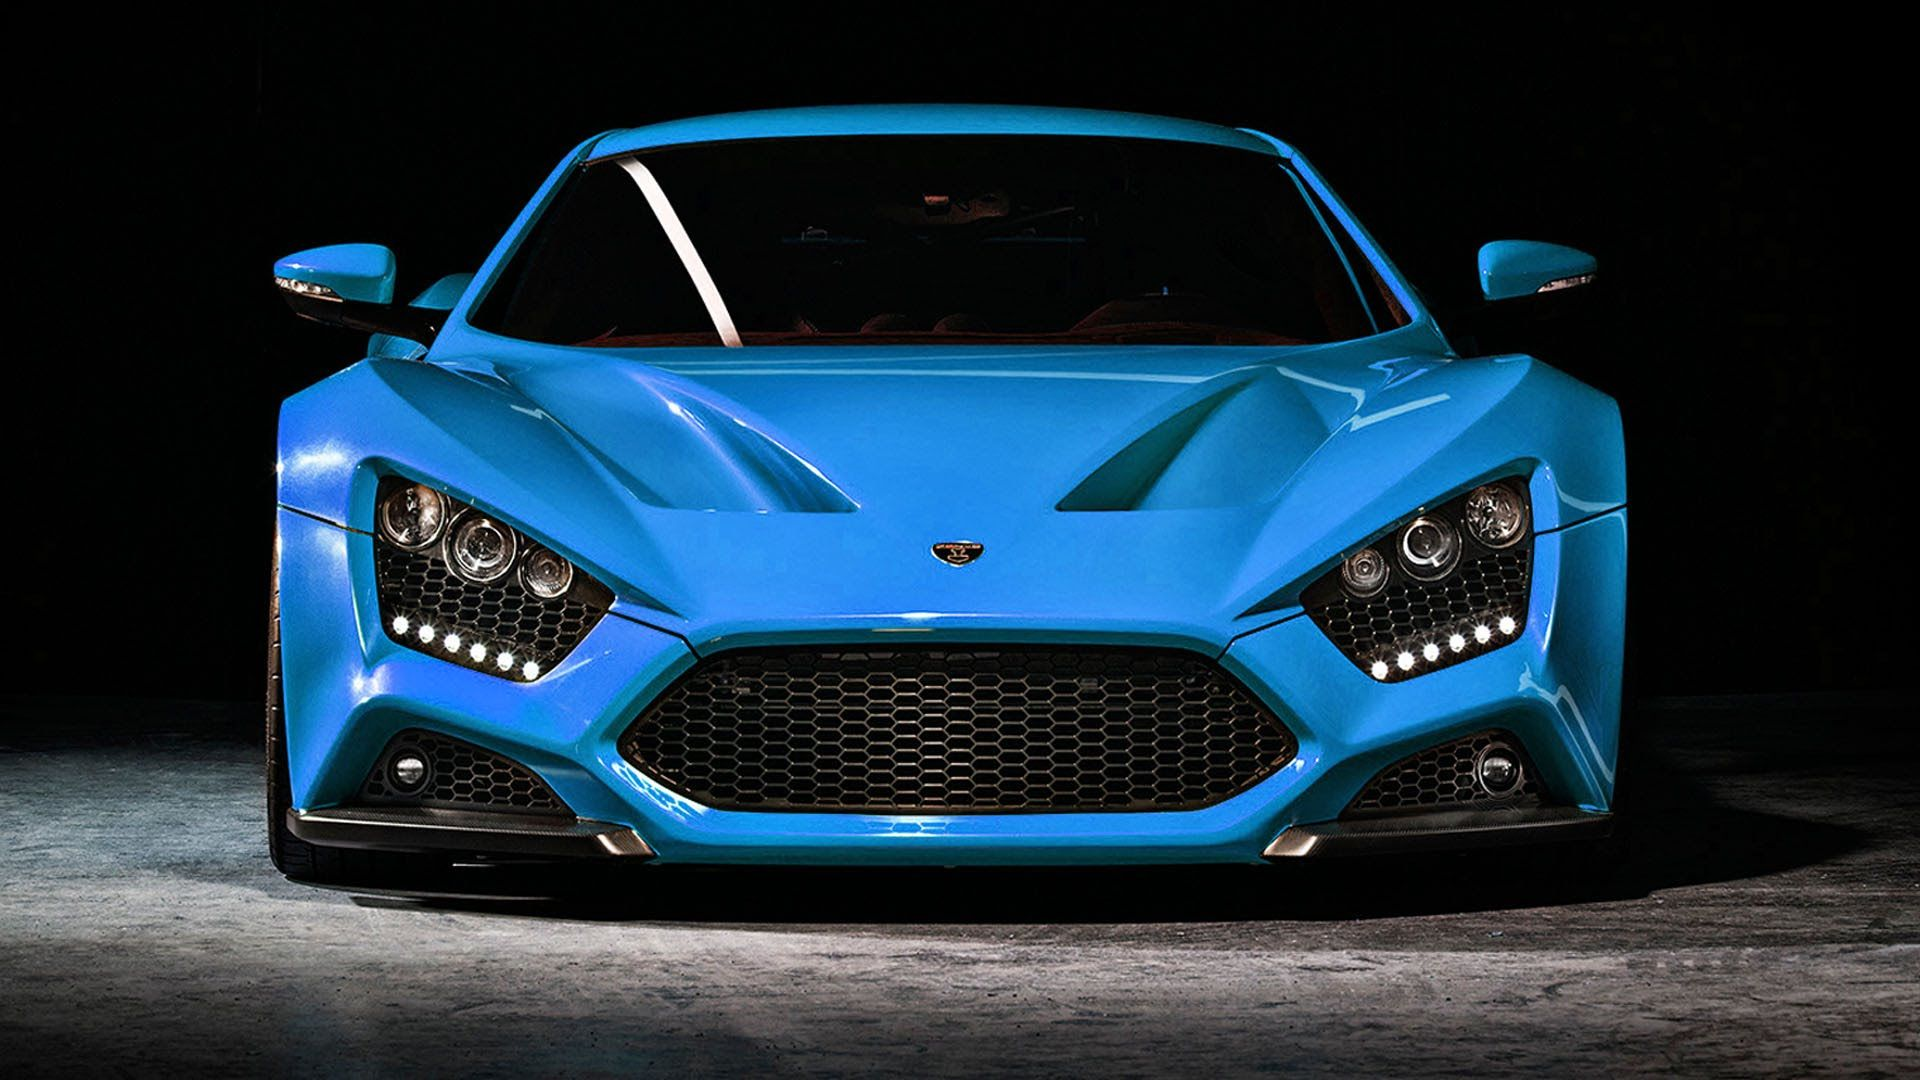 How Its Made Dream Cars S02e17 Zenvo ST1 720p HD Cars And